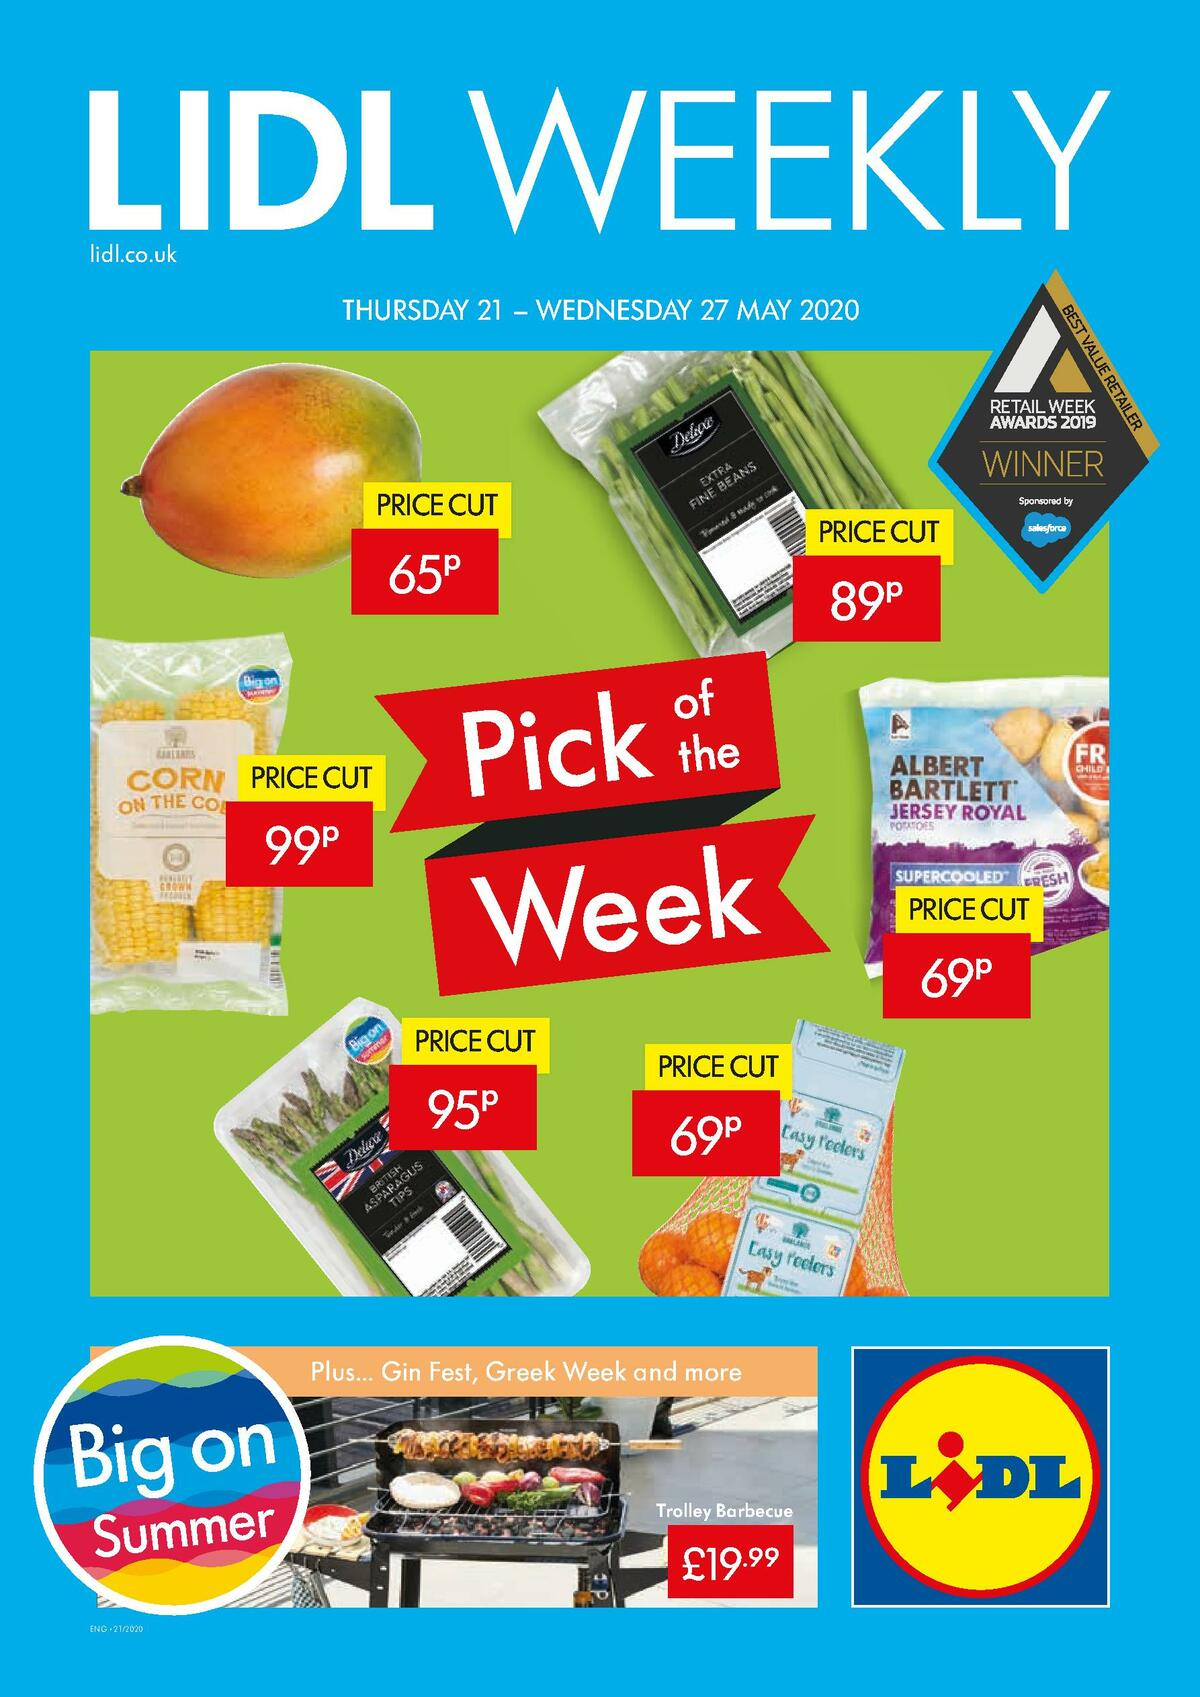 LIDL Offers from May 21